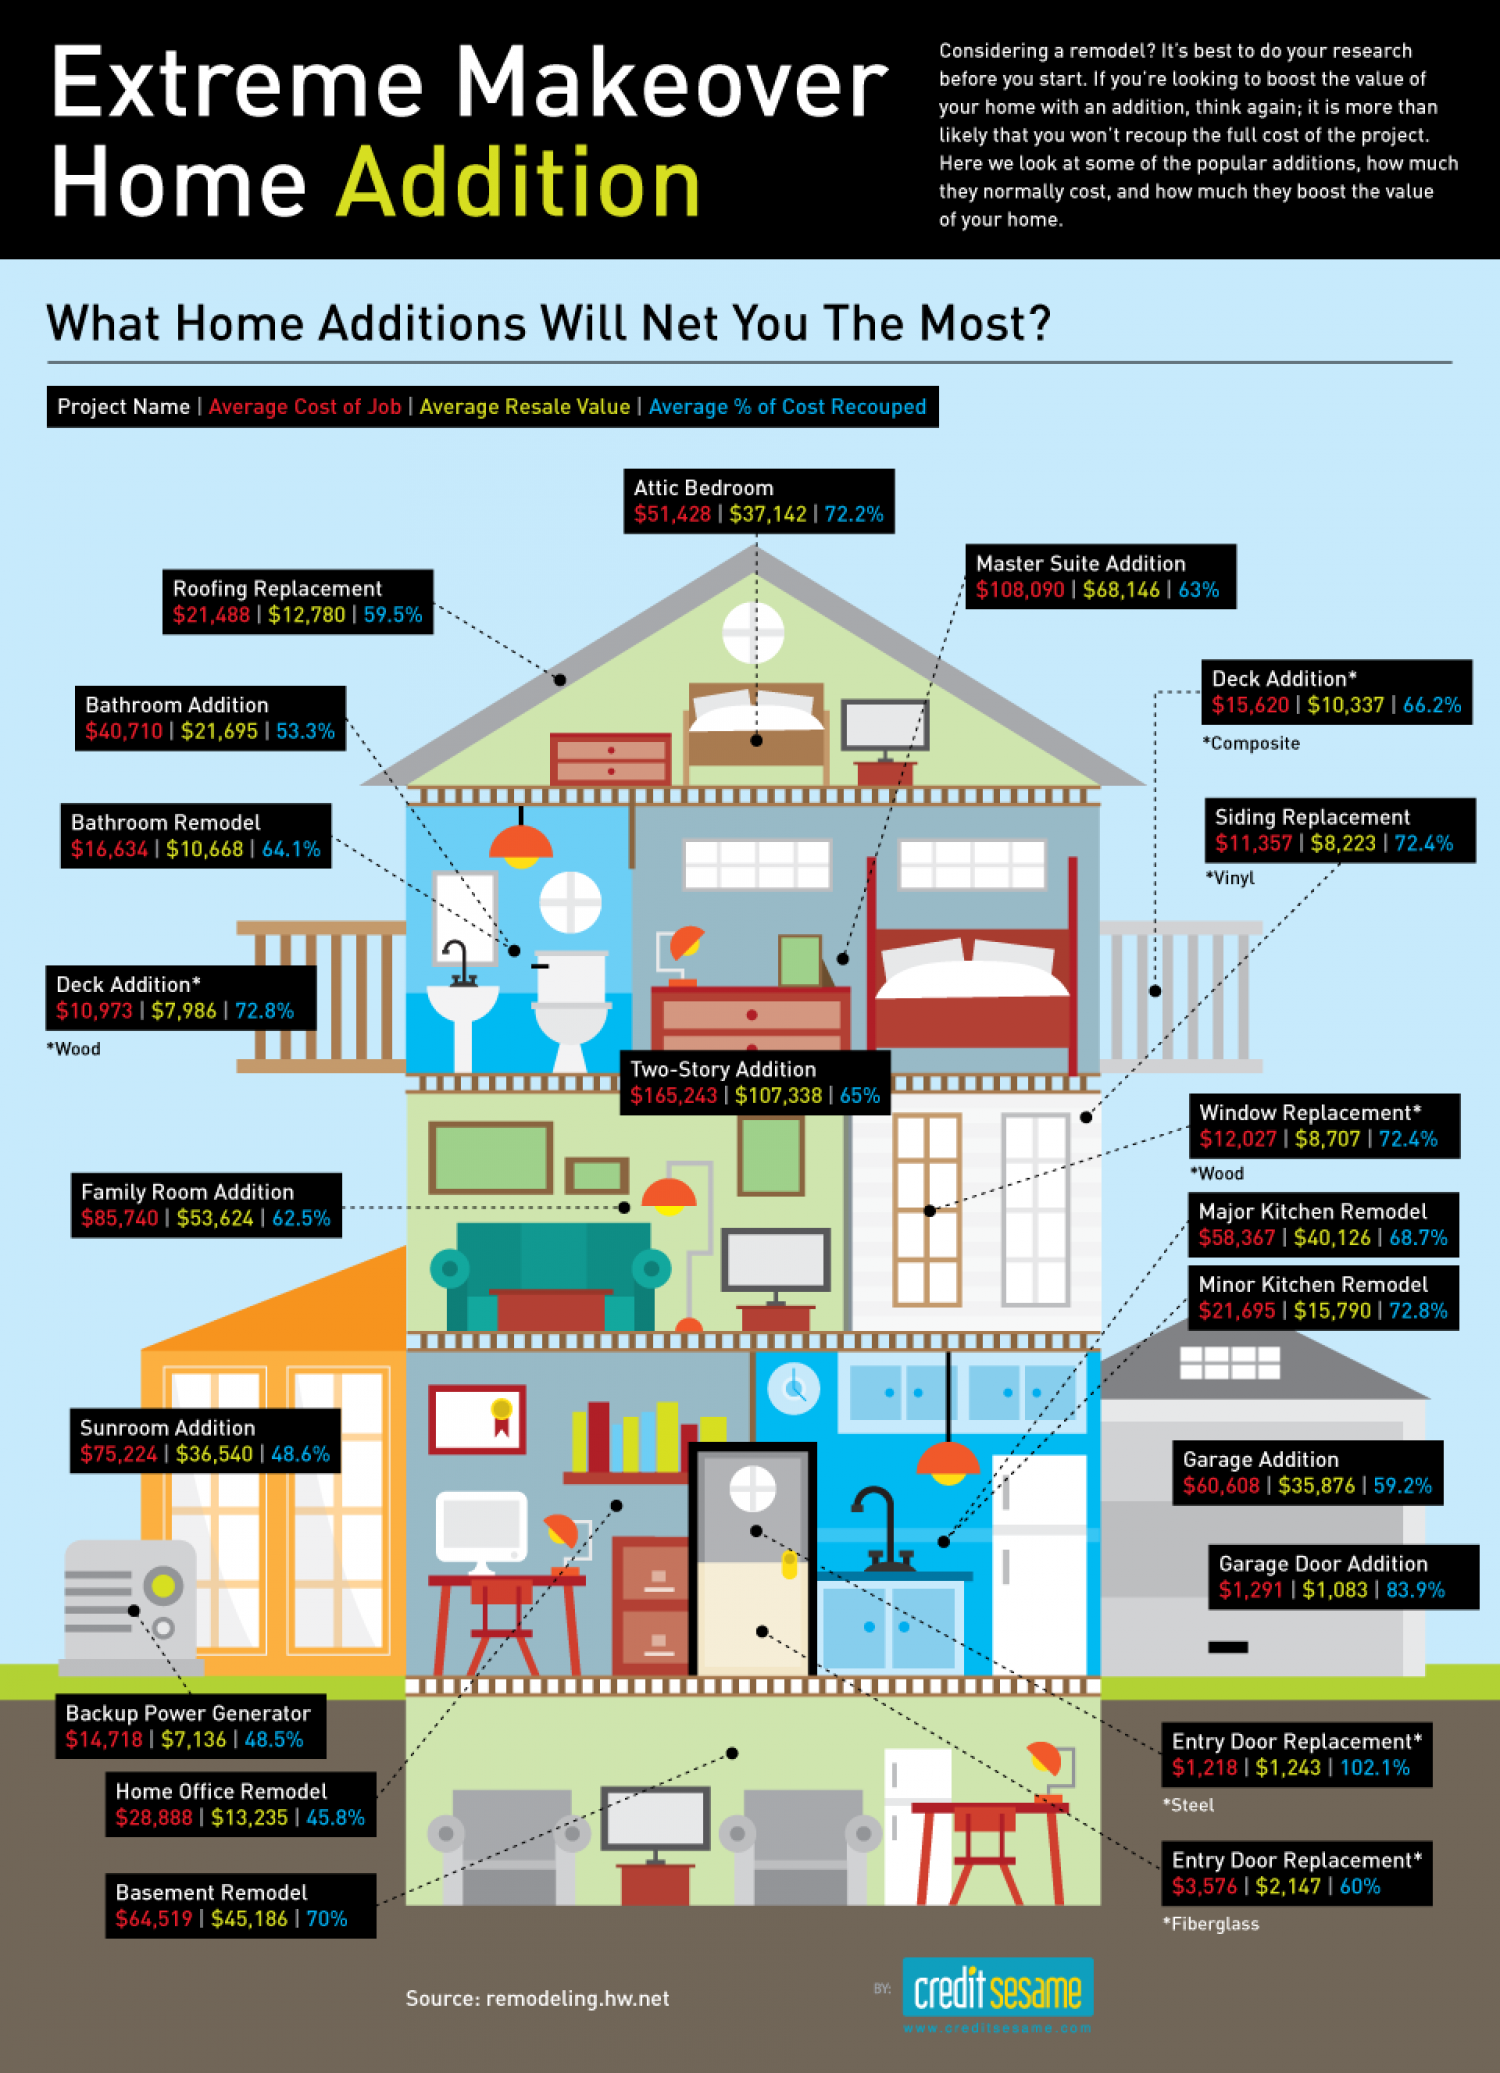 Extreme Makeover Home Addition Infographic